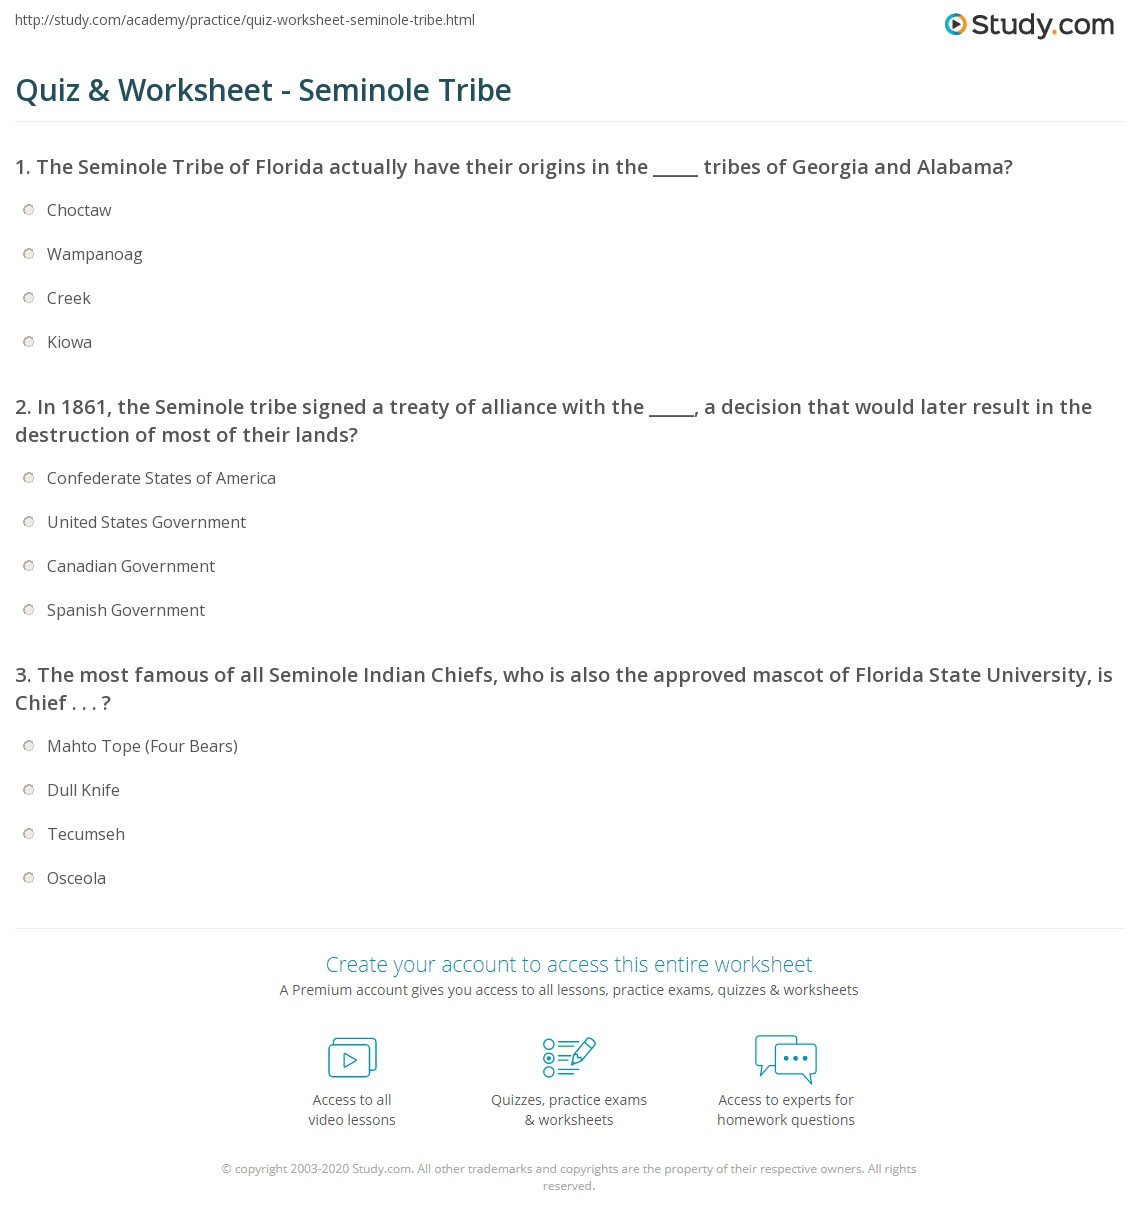 Quiz Worksheet Seminole Tribe Study